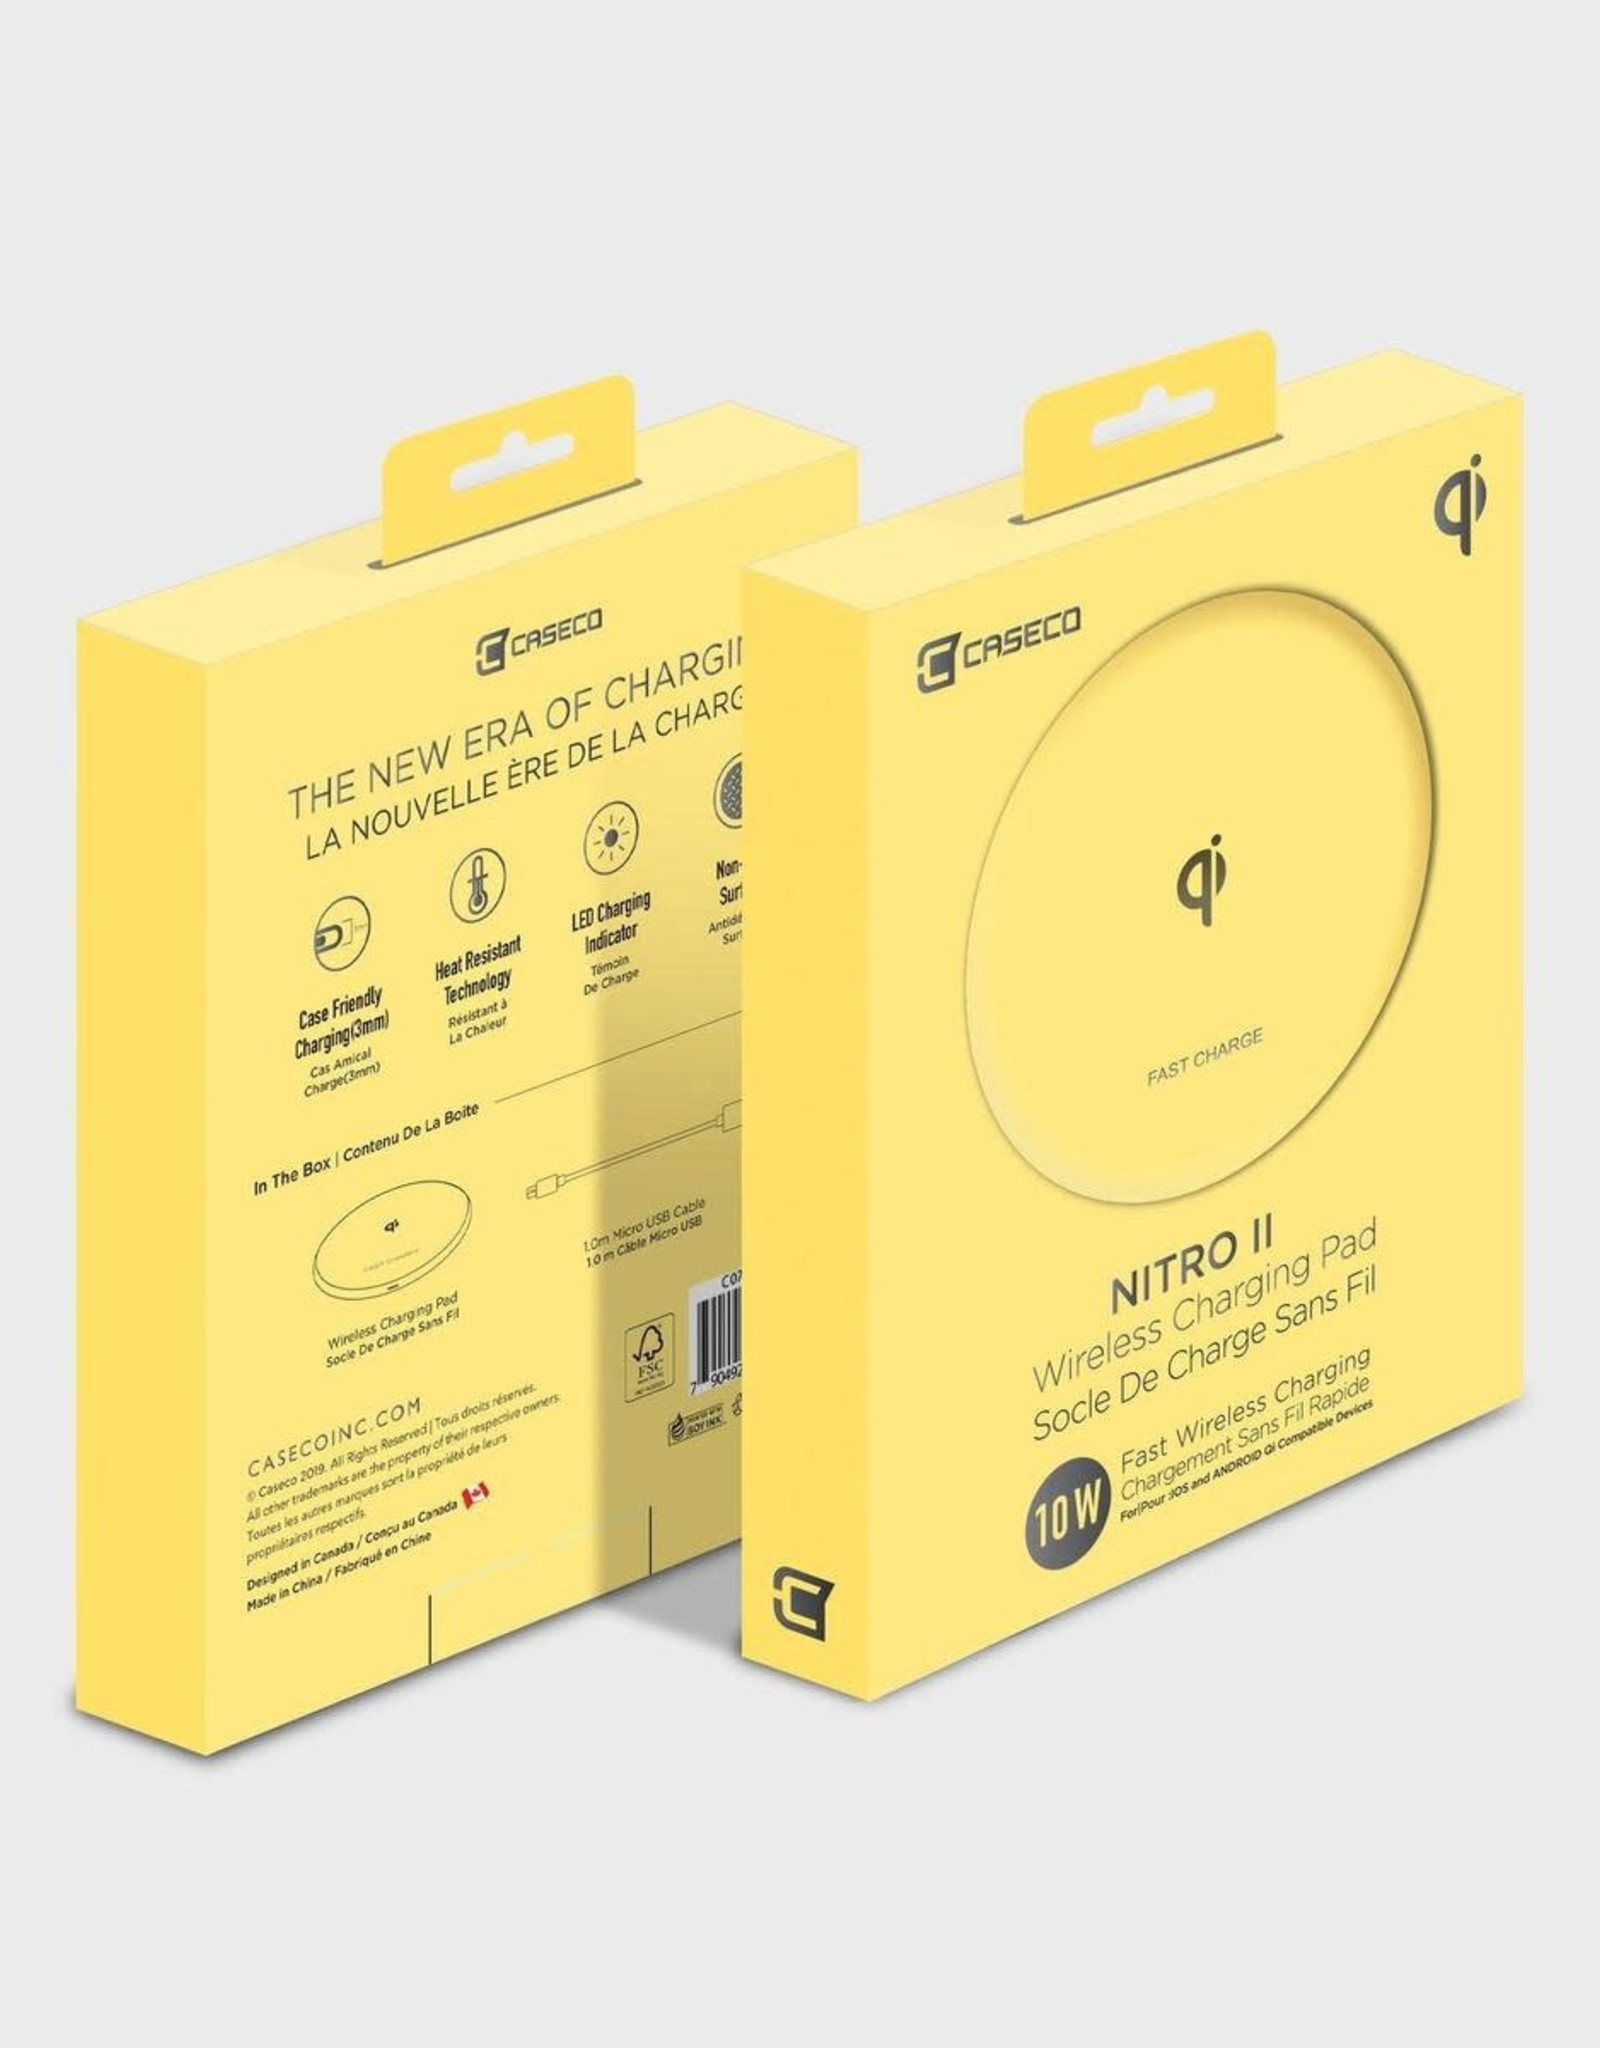 Caseco Caseco Nitro II 10W Fast Wireless Charger For Android & IOS Lemon C0710-20